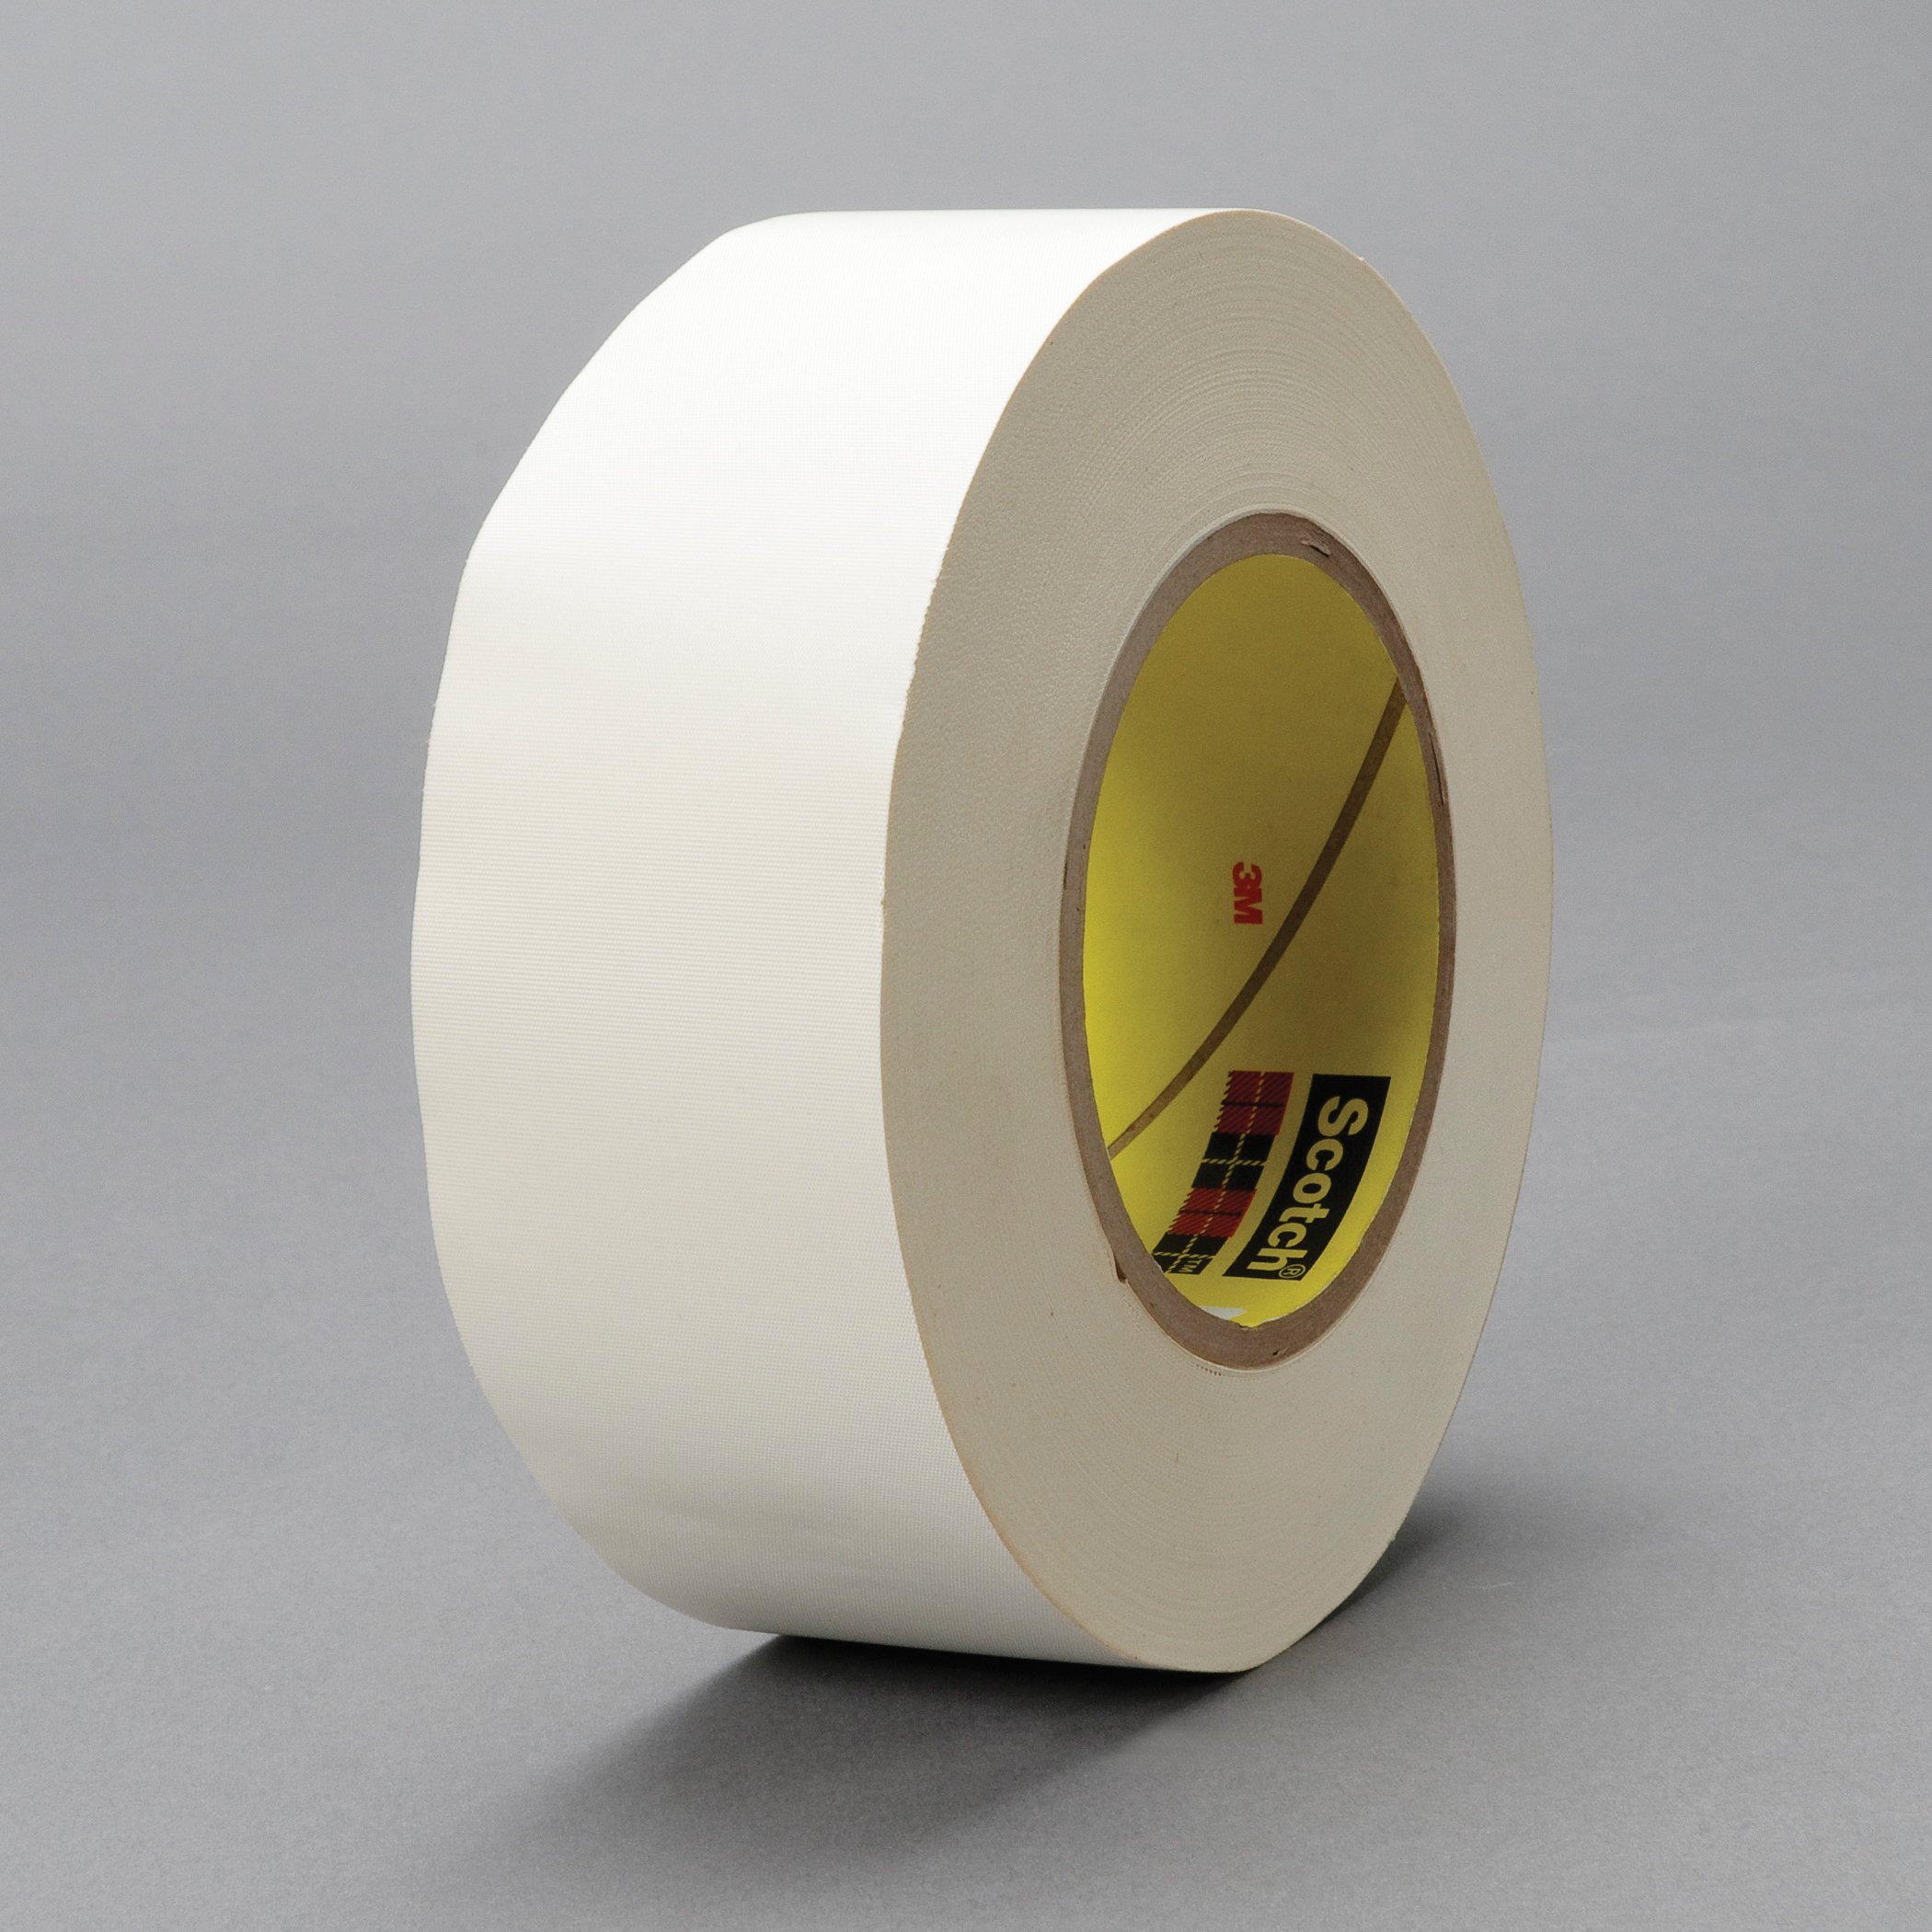 3M™ 021200-03019 Cloth Tape, 60 yd L x 3/4 in W, 8.3 mil THK, Thermoset Rubber Resin Adhesive, Glass Cloth Backing, White